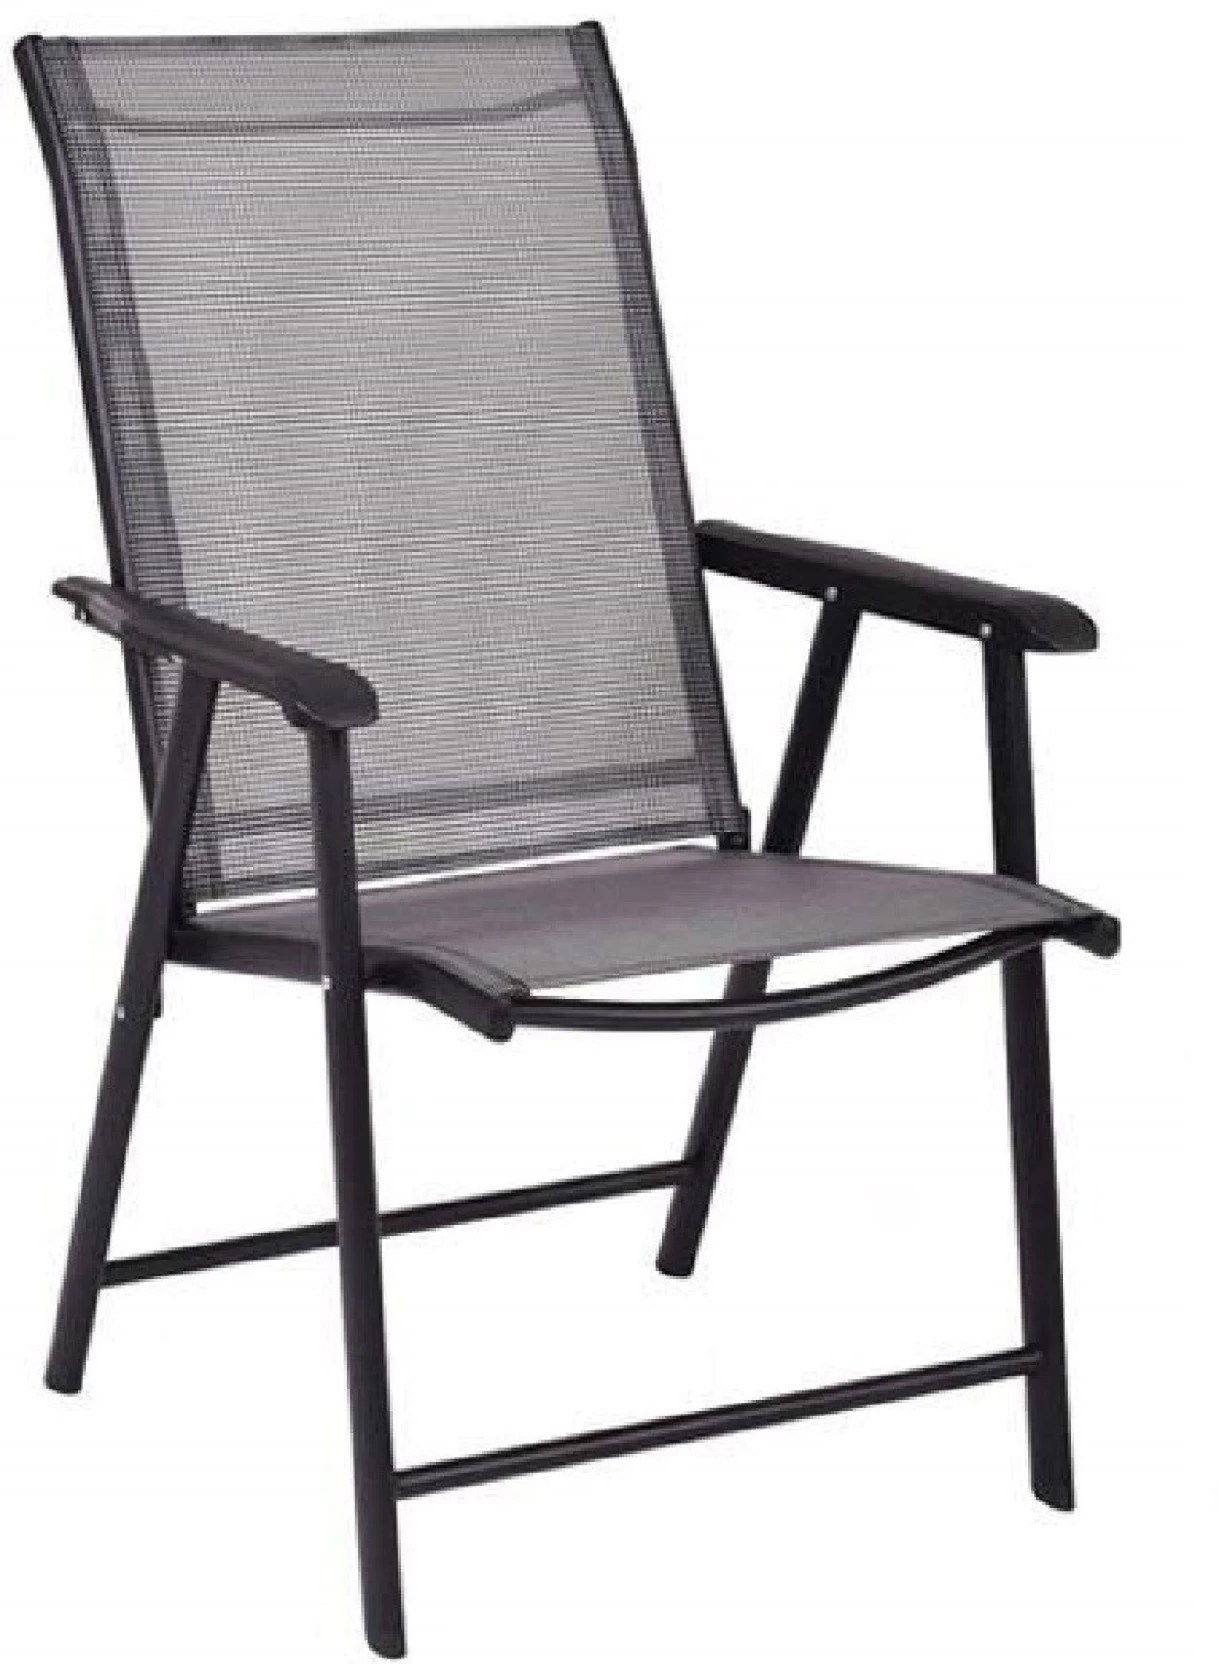 Foldable Lawn Chairs Style Eva Stylish Relax Modern Outdoor Folding Lawn Chairs With